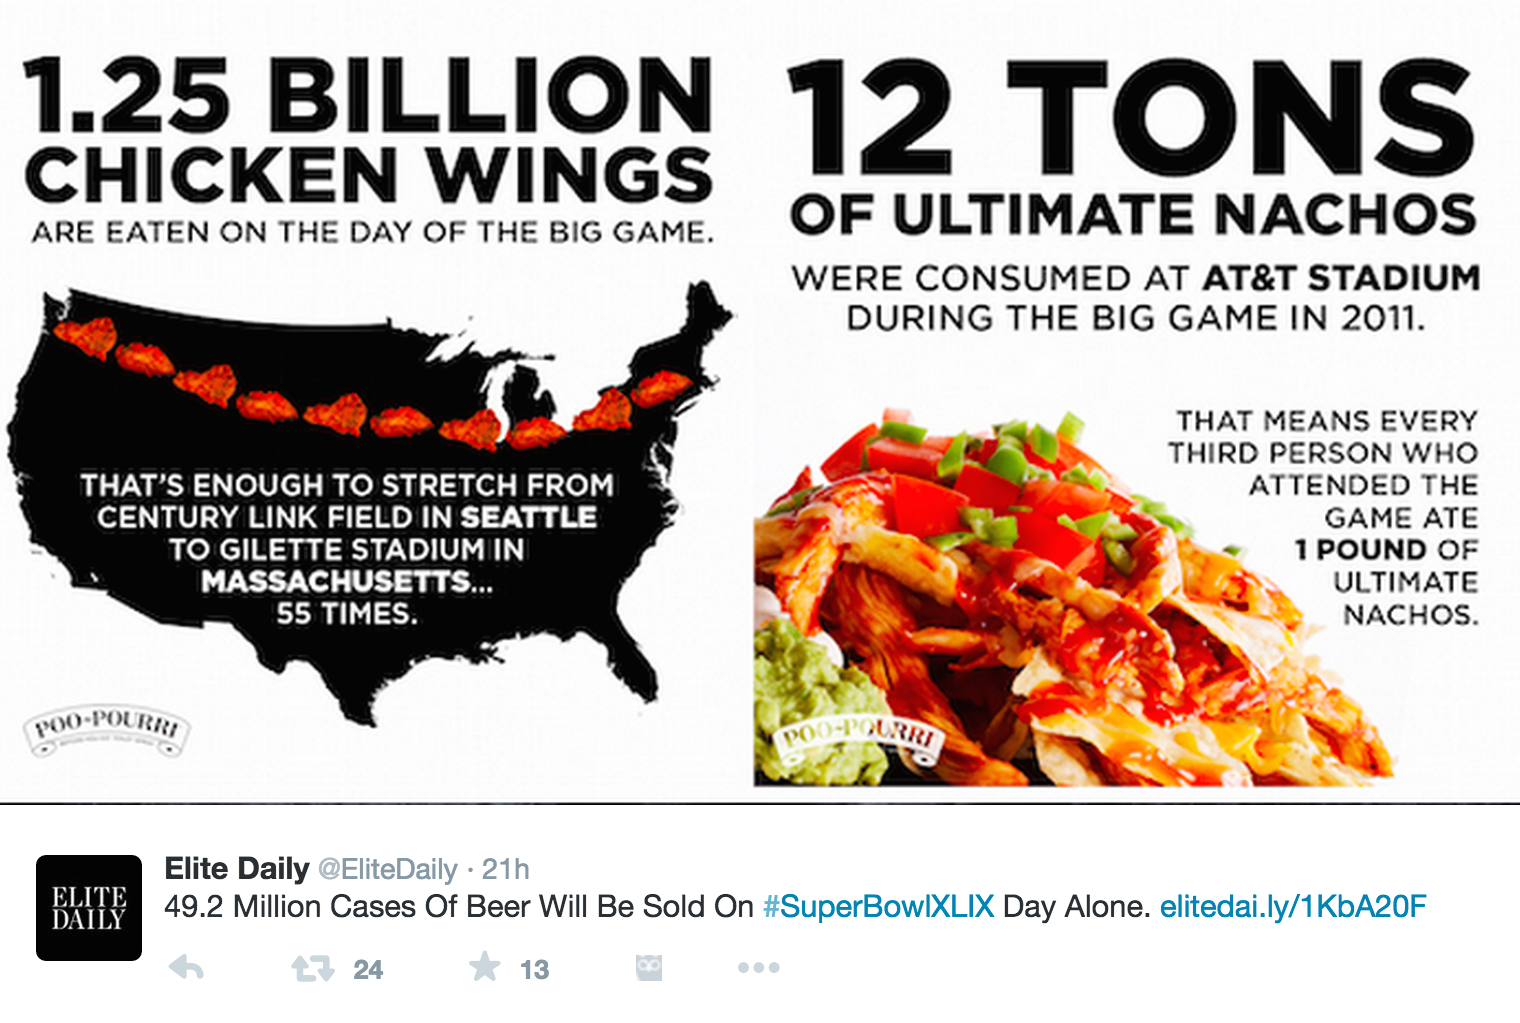 Super Bowl XLIX, Super Bowl XLIX food, CHicken wings